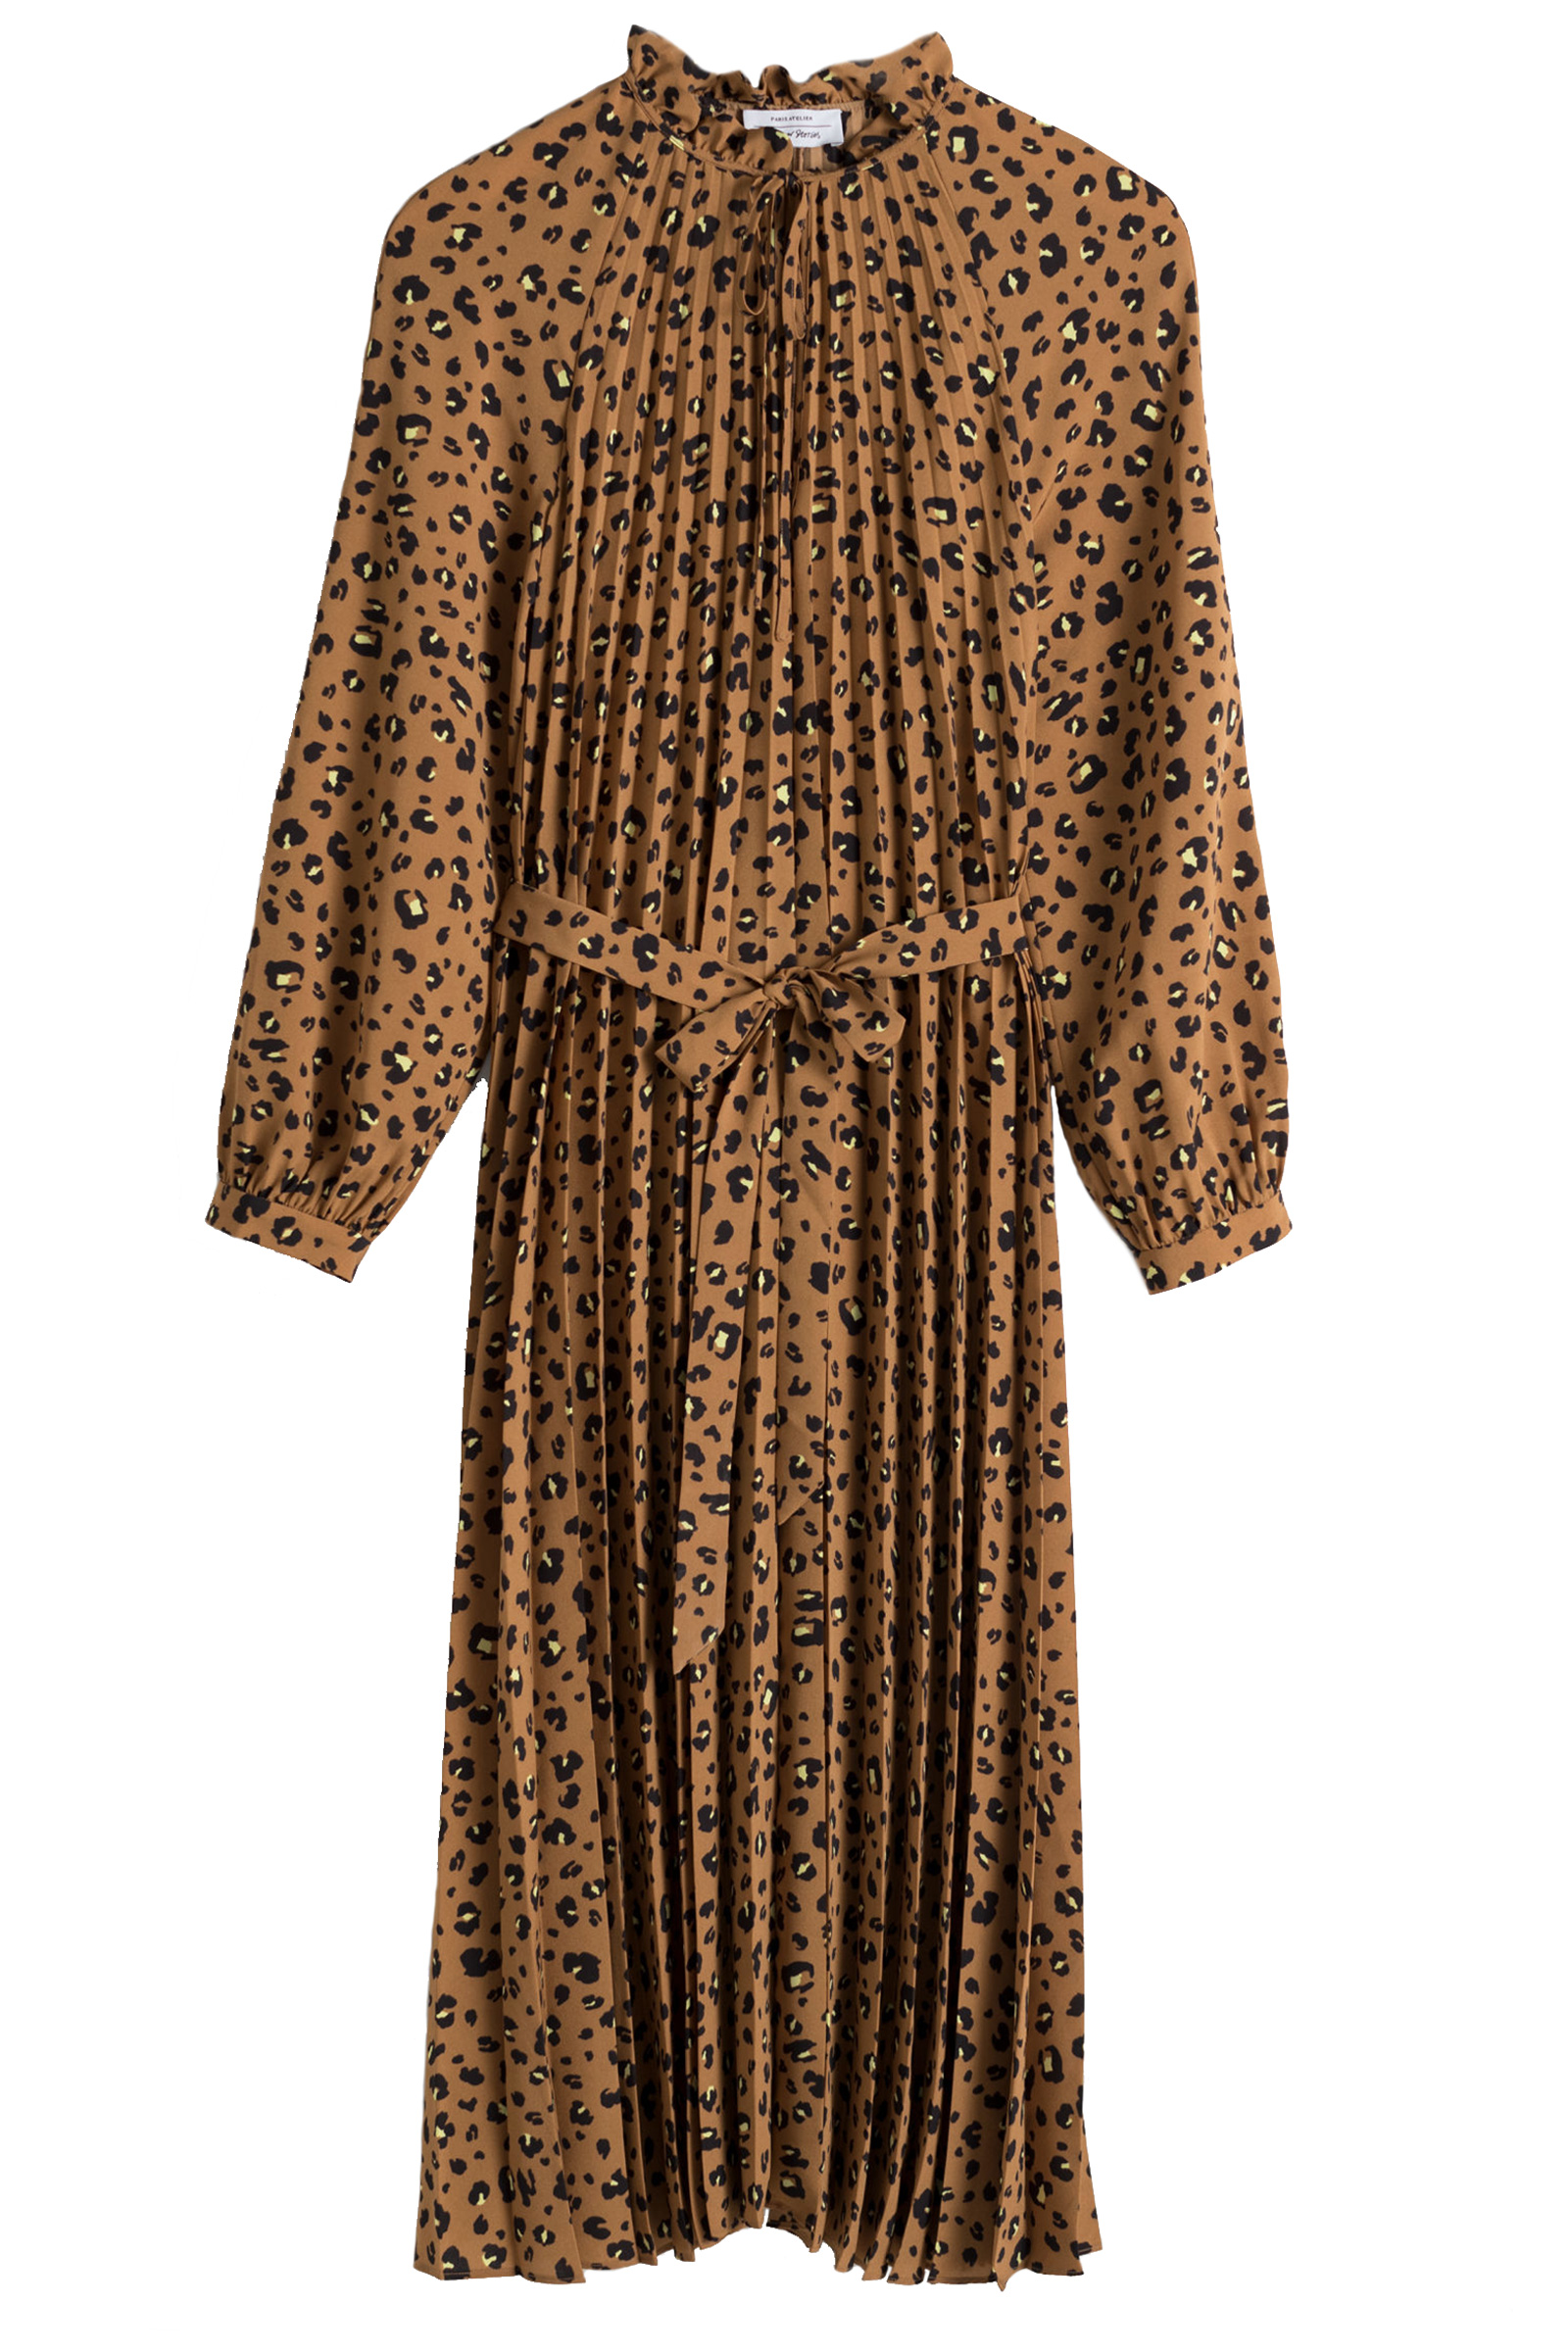 a5aab6957 Buy & Other Stories Pleated Leopard Print Midi Dress Online